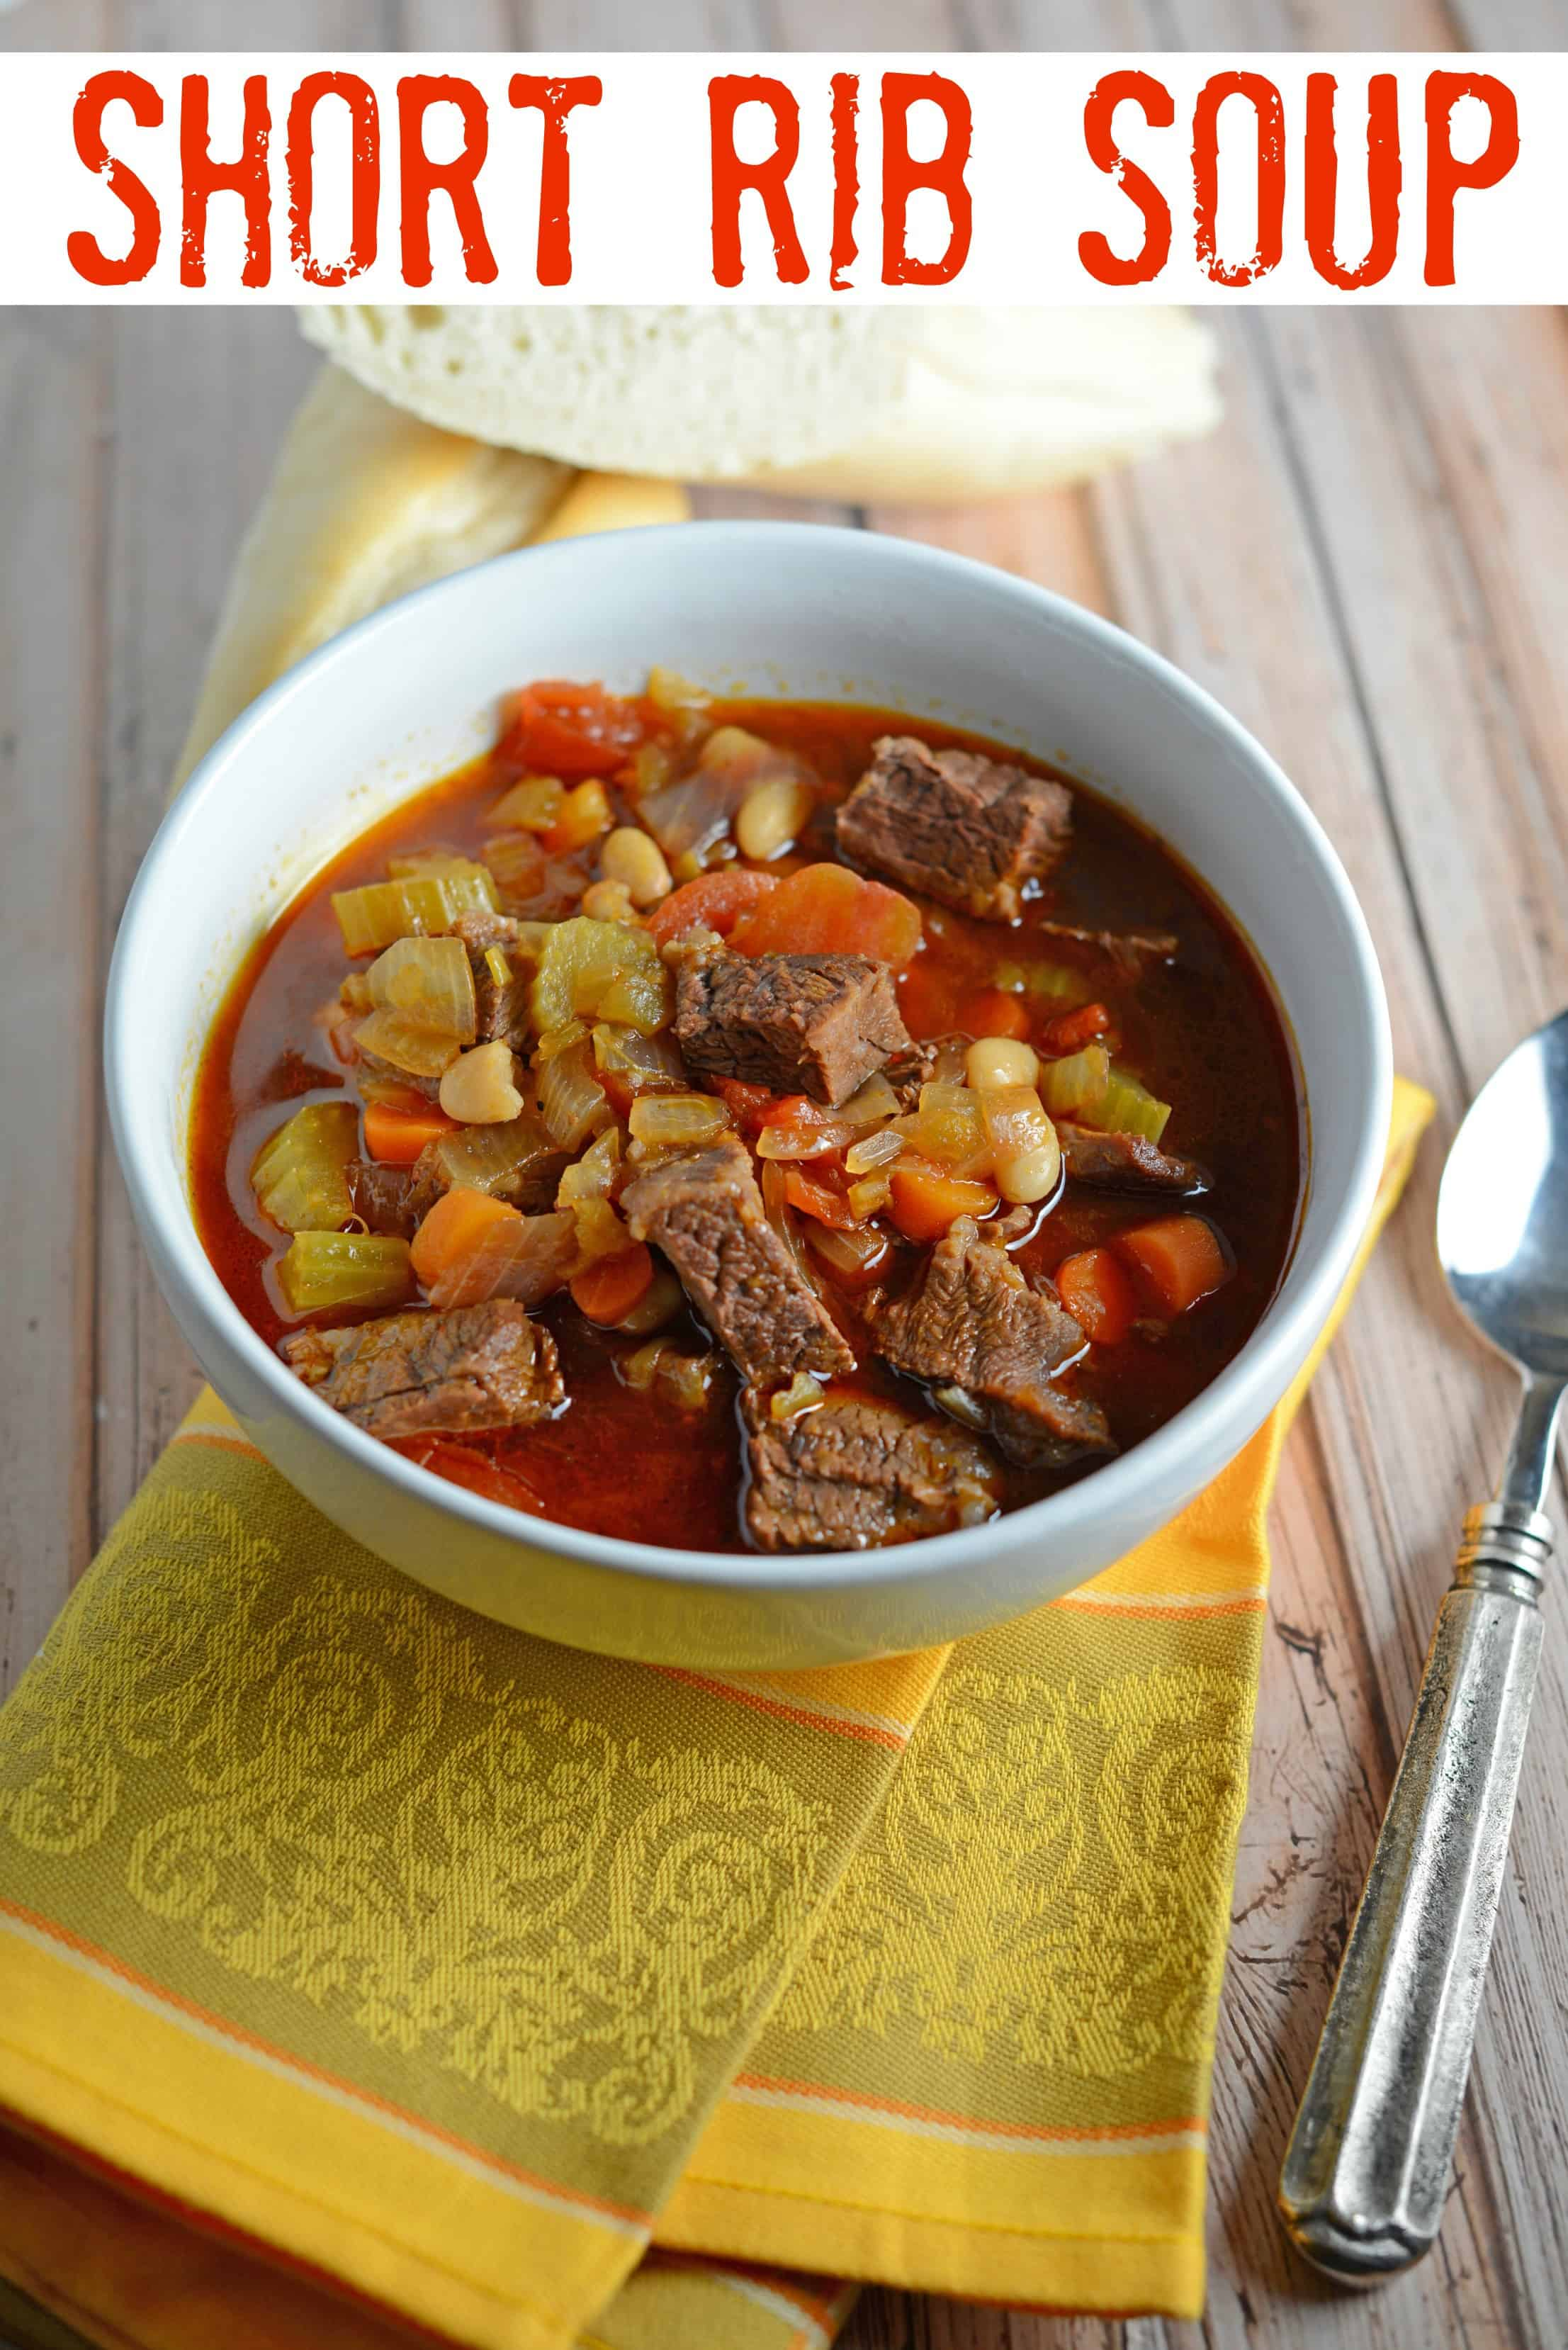 Short Rib Soup Recipe- a hearty comforting soup made with vegetables and shredded short ribs. Also known as Booyah in parts of the US. This soup can be served as an appetizer or entree and freezes well. www.savoryexperiments.com